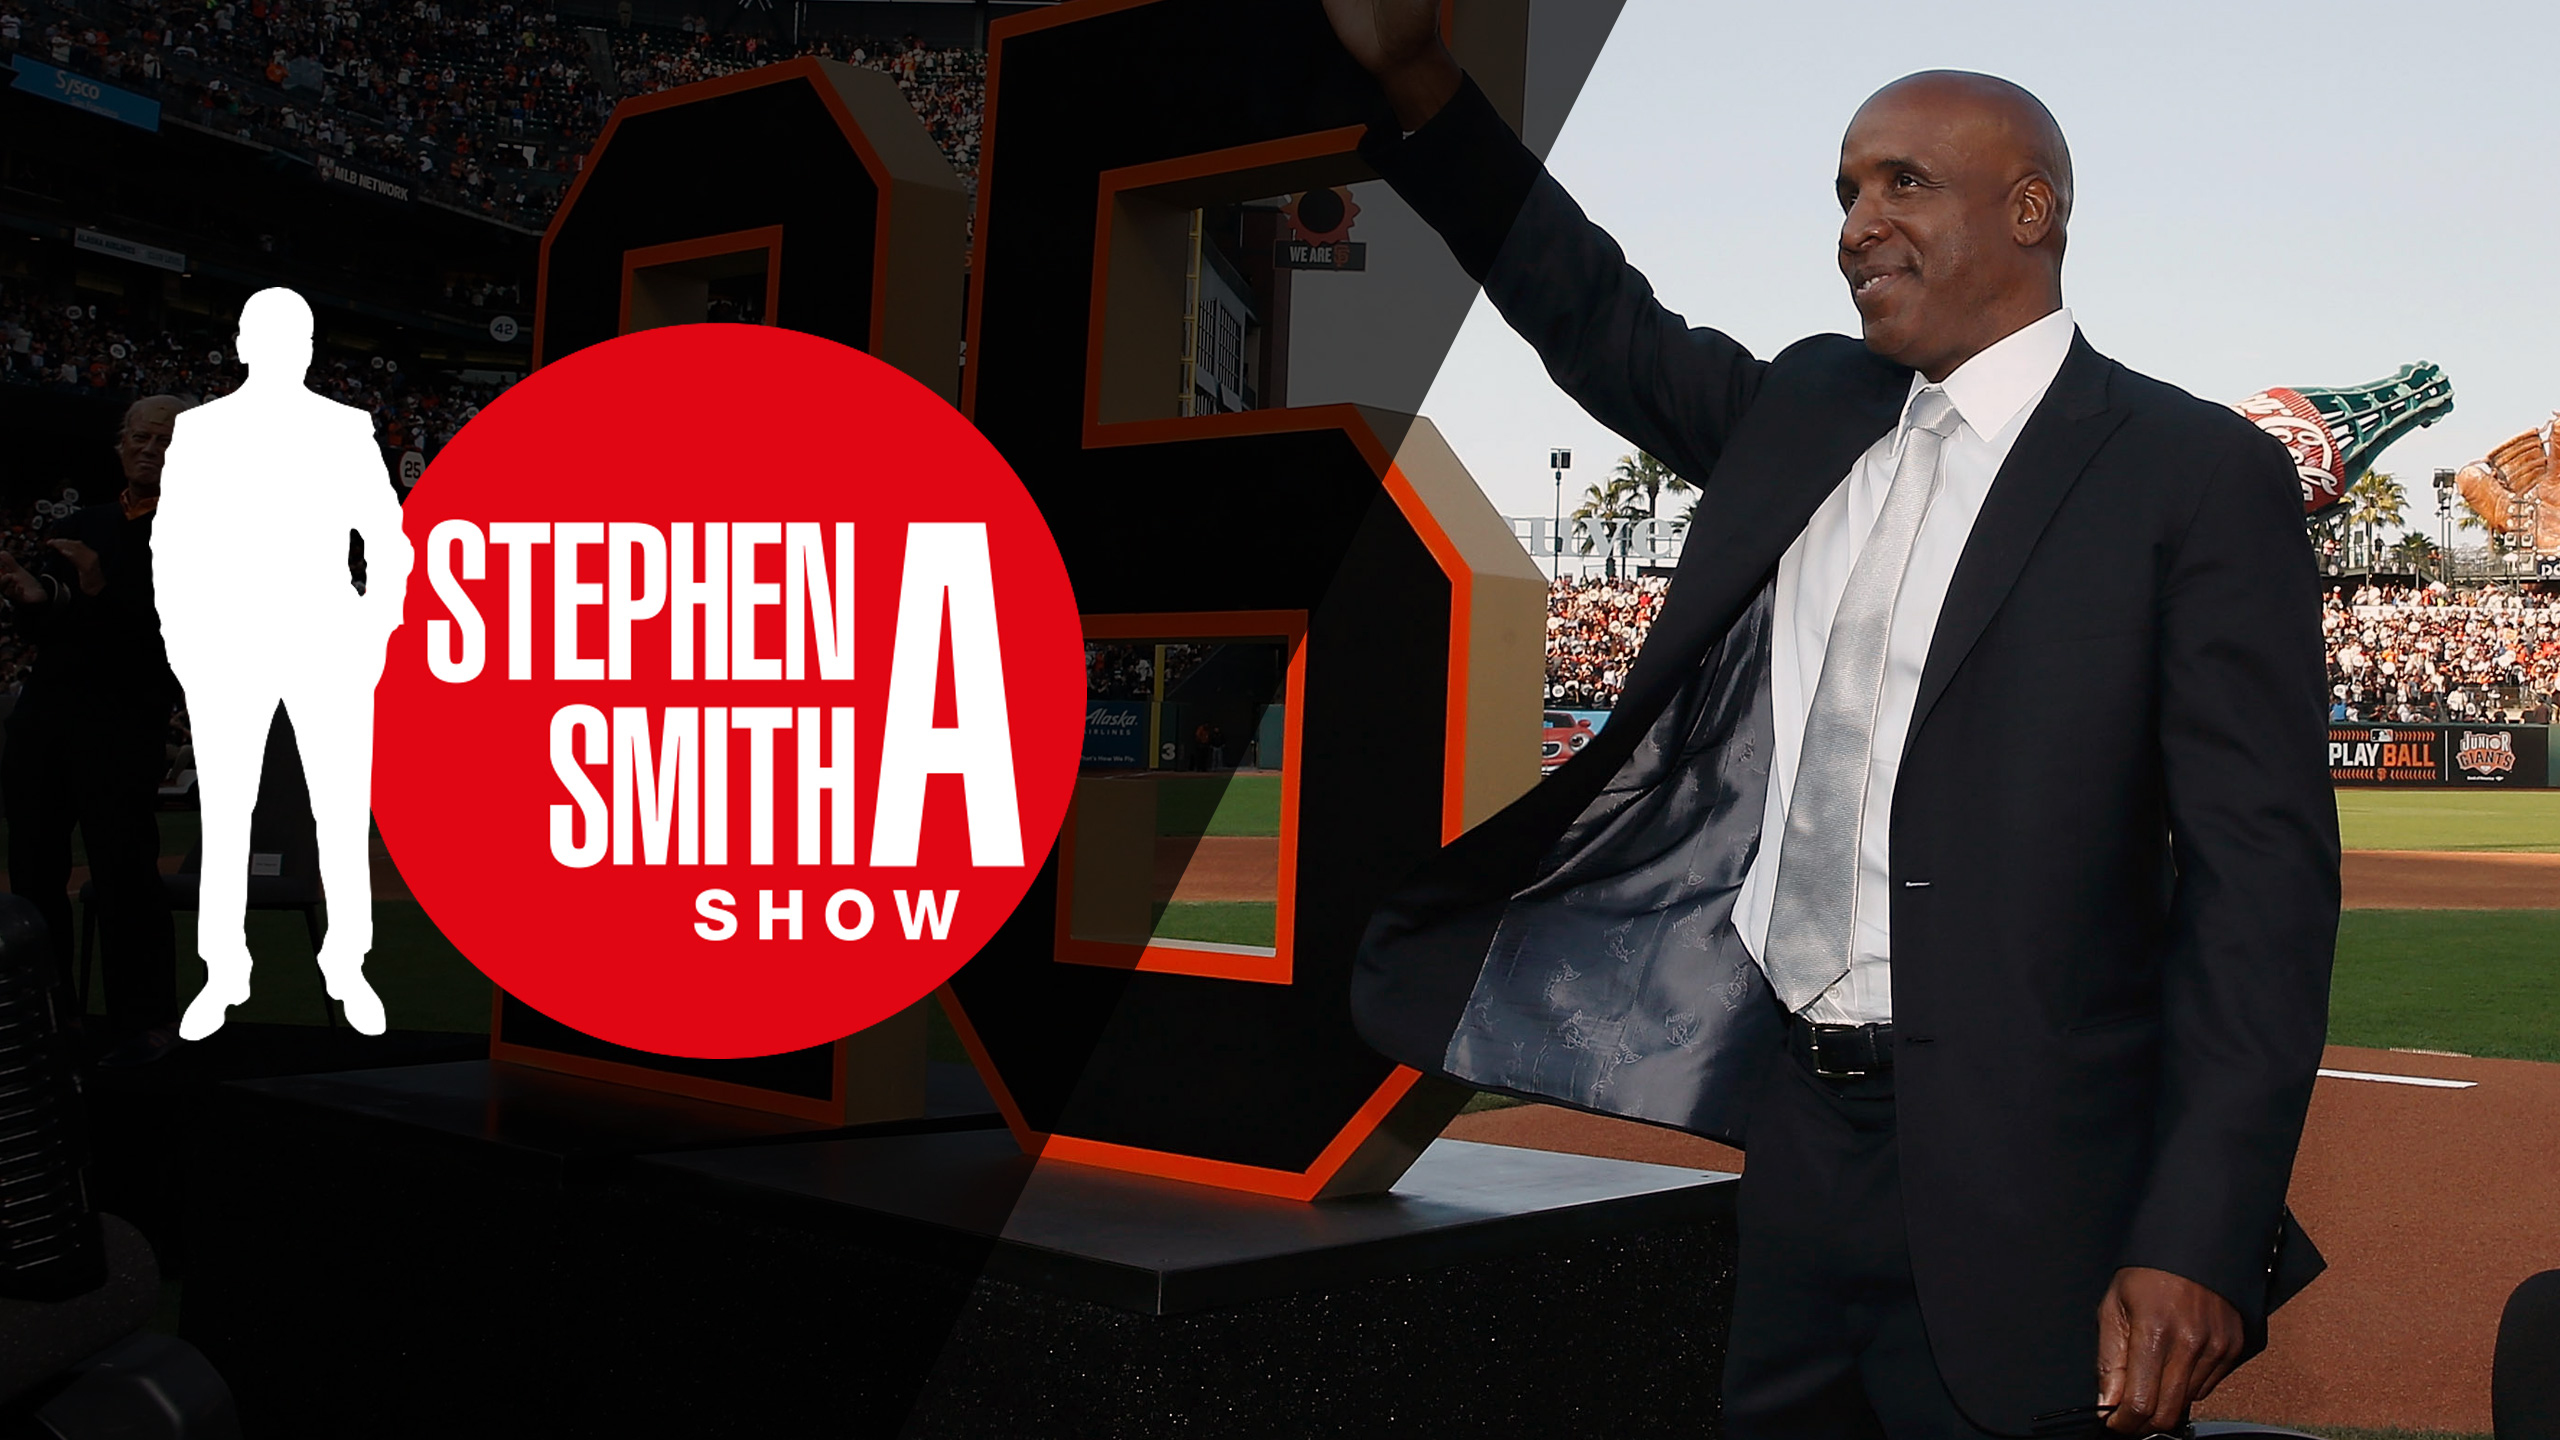 Wed, 1/23 - The Stephen A. Smith Show